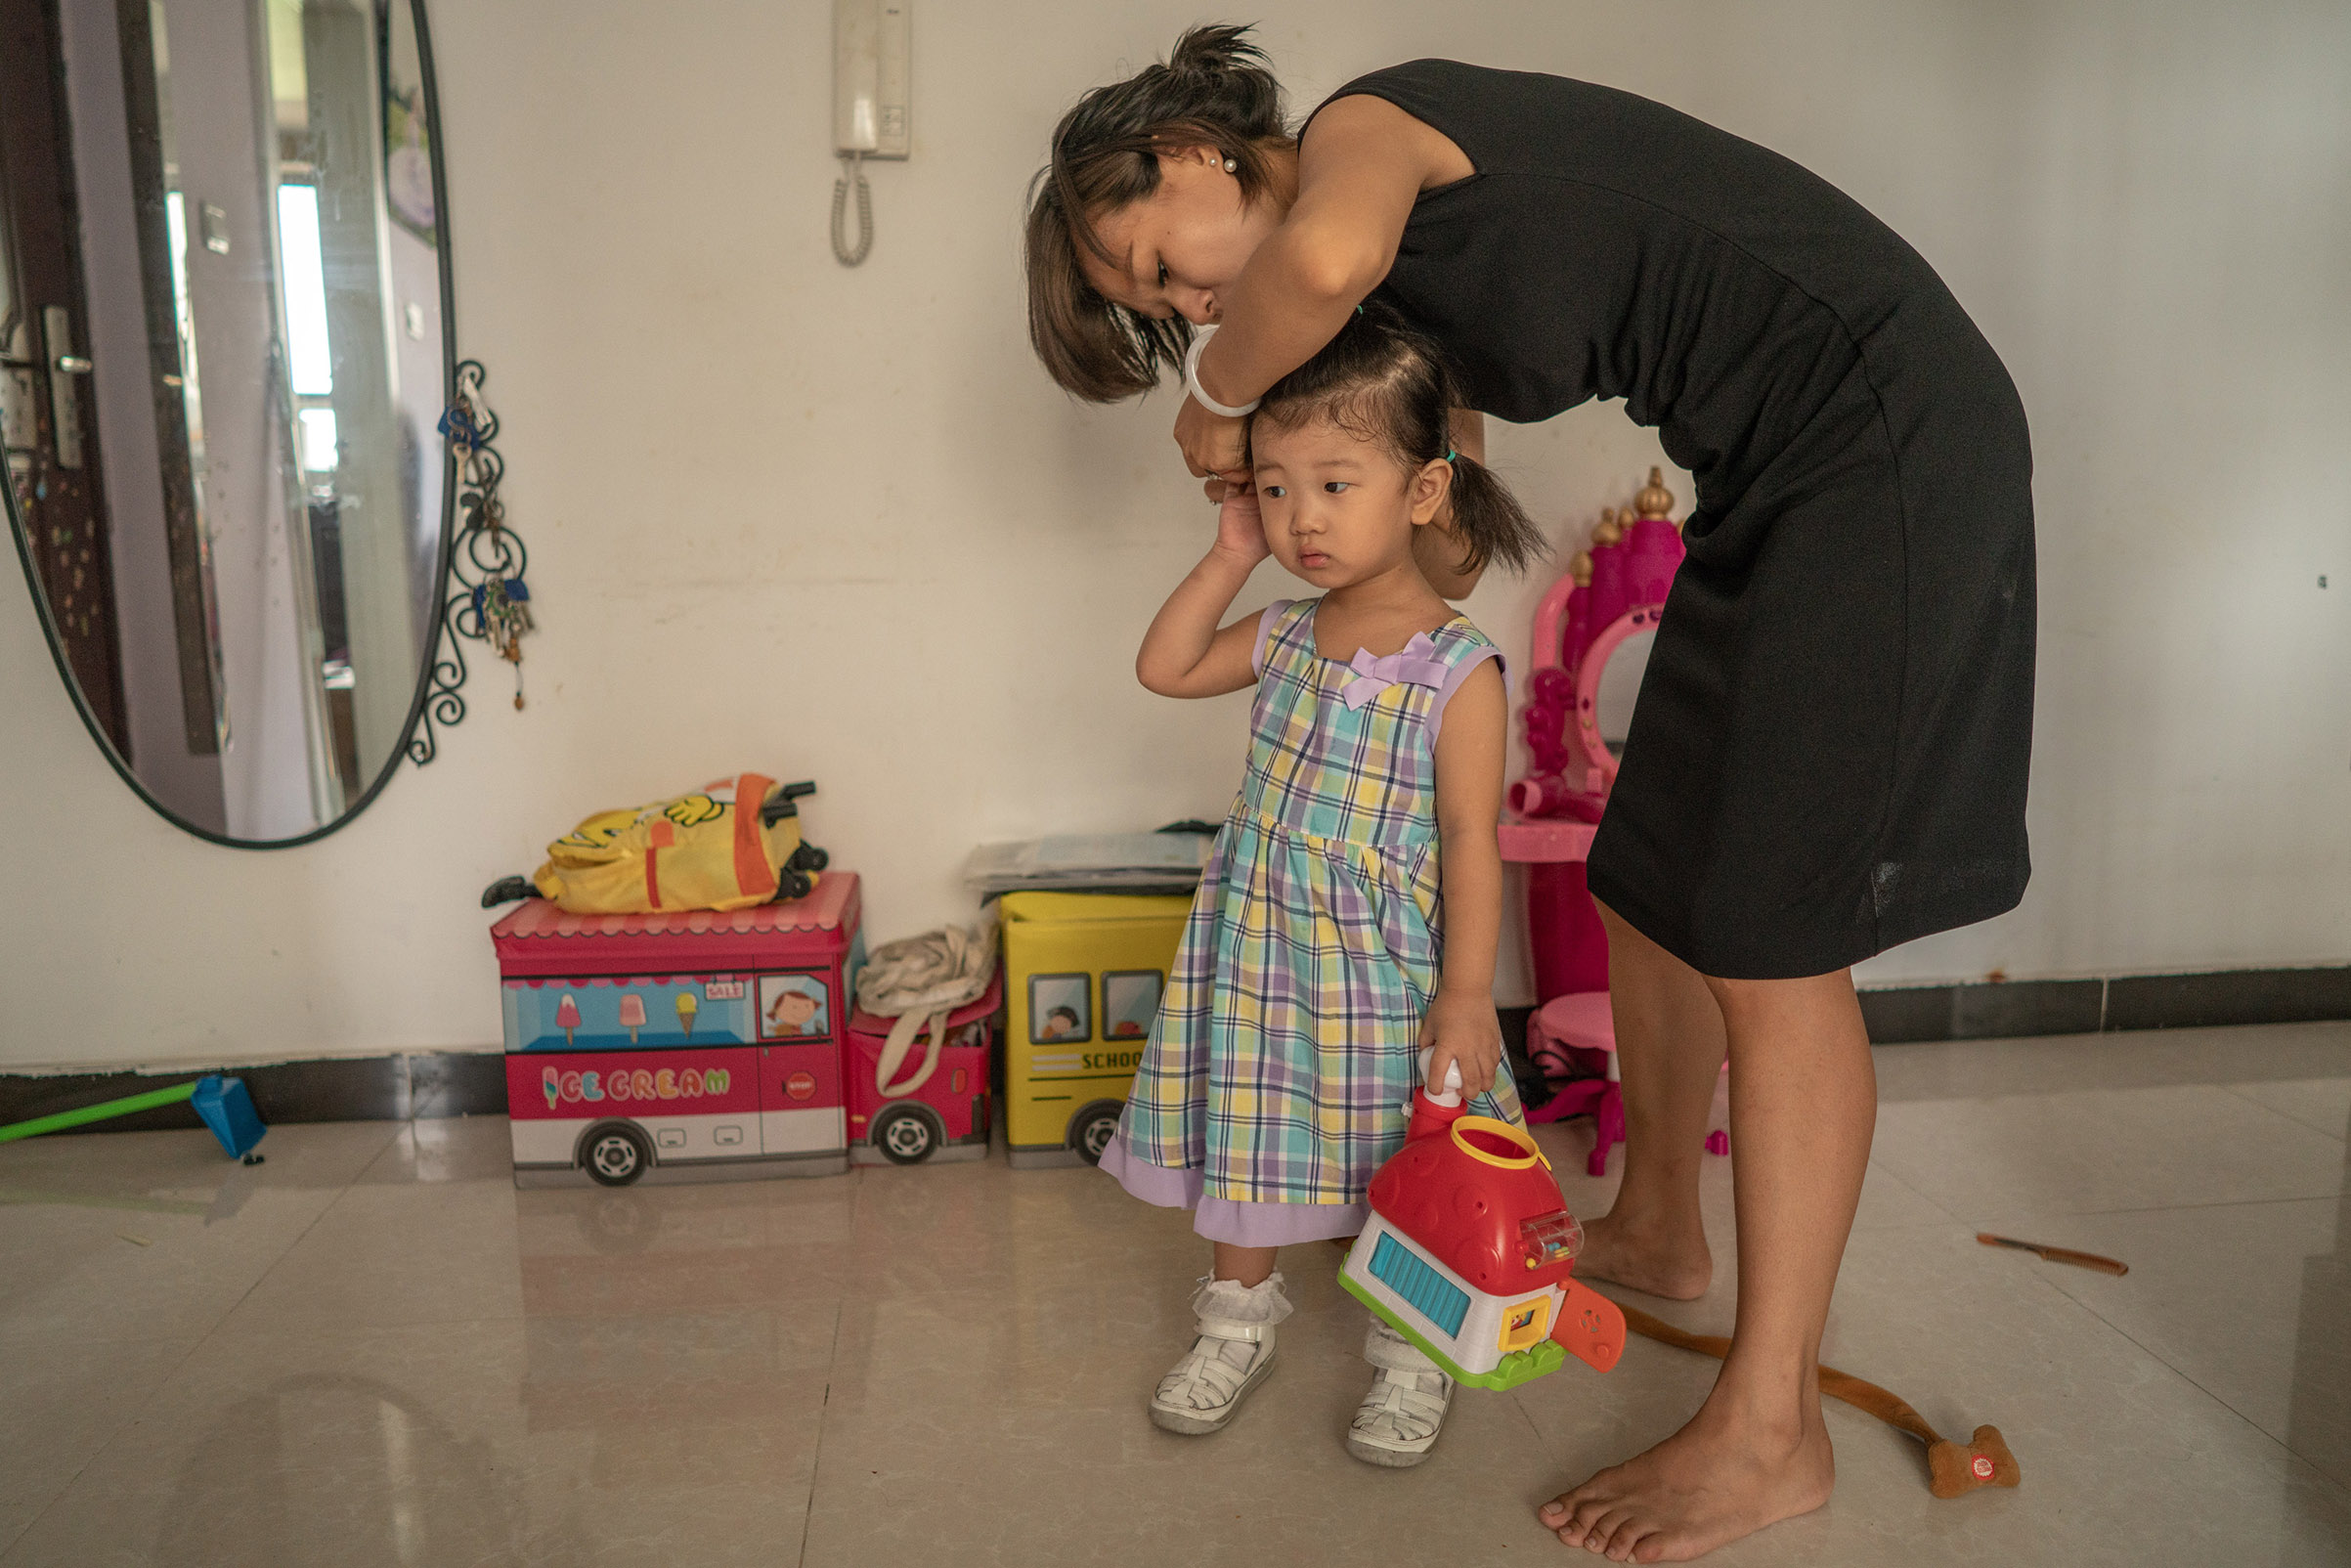 Ma Ying, 30, says she and her husband would prefer to raise their daughter Sang Tianyi, 3, as an only child